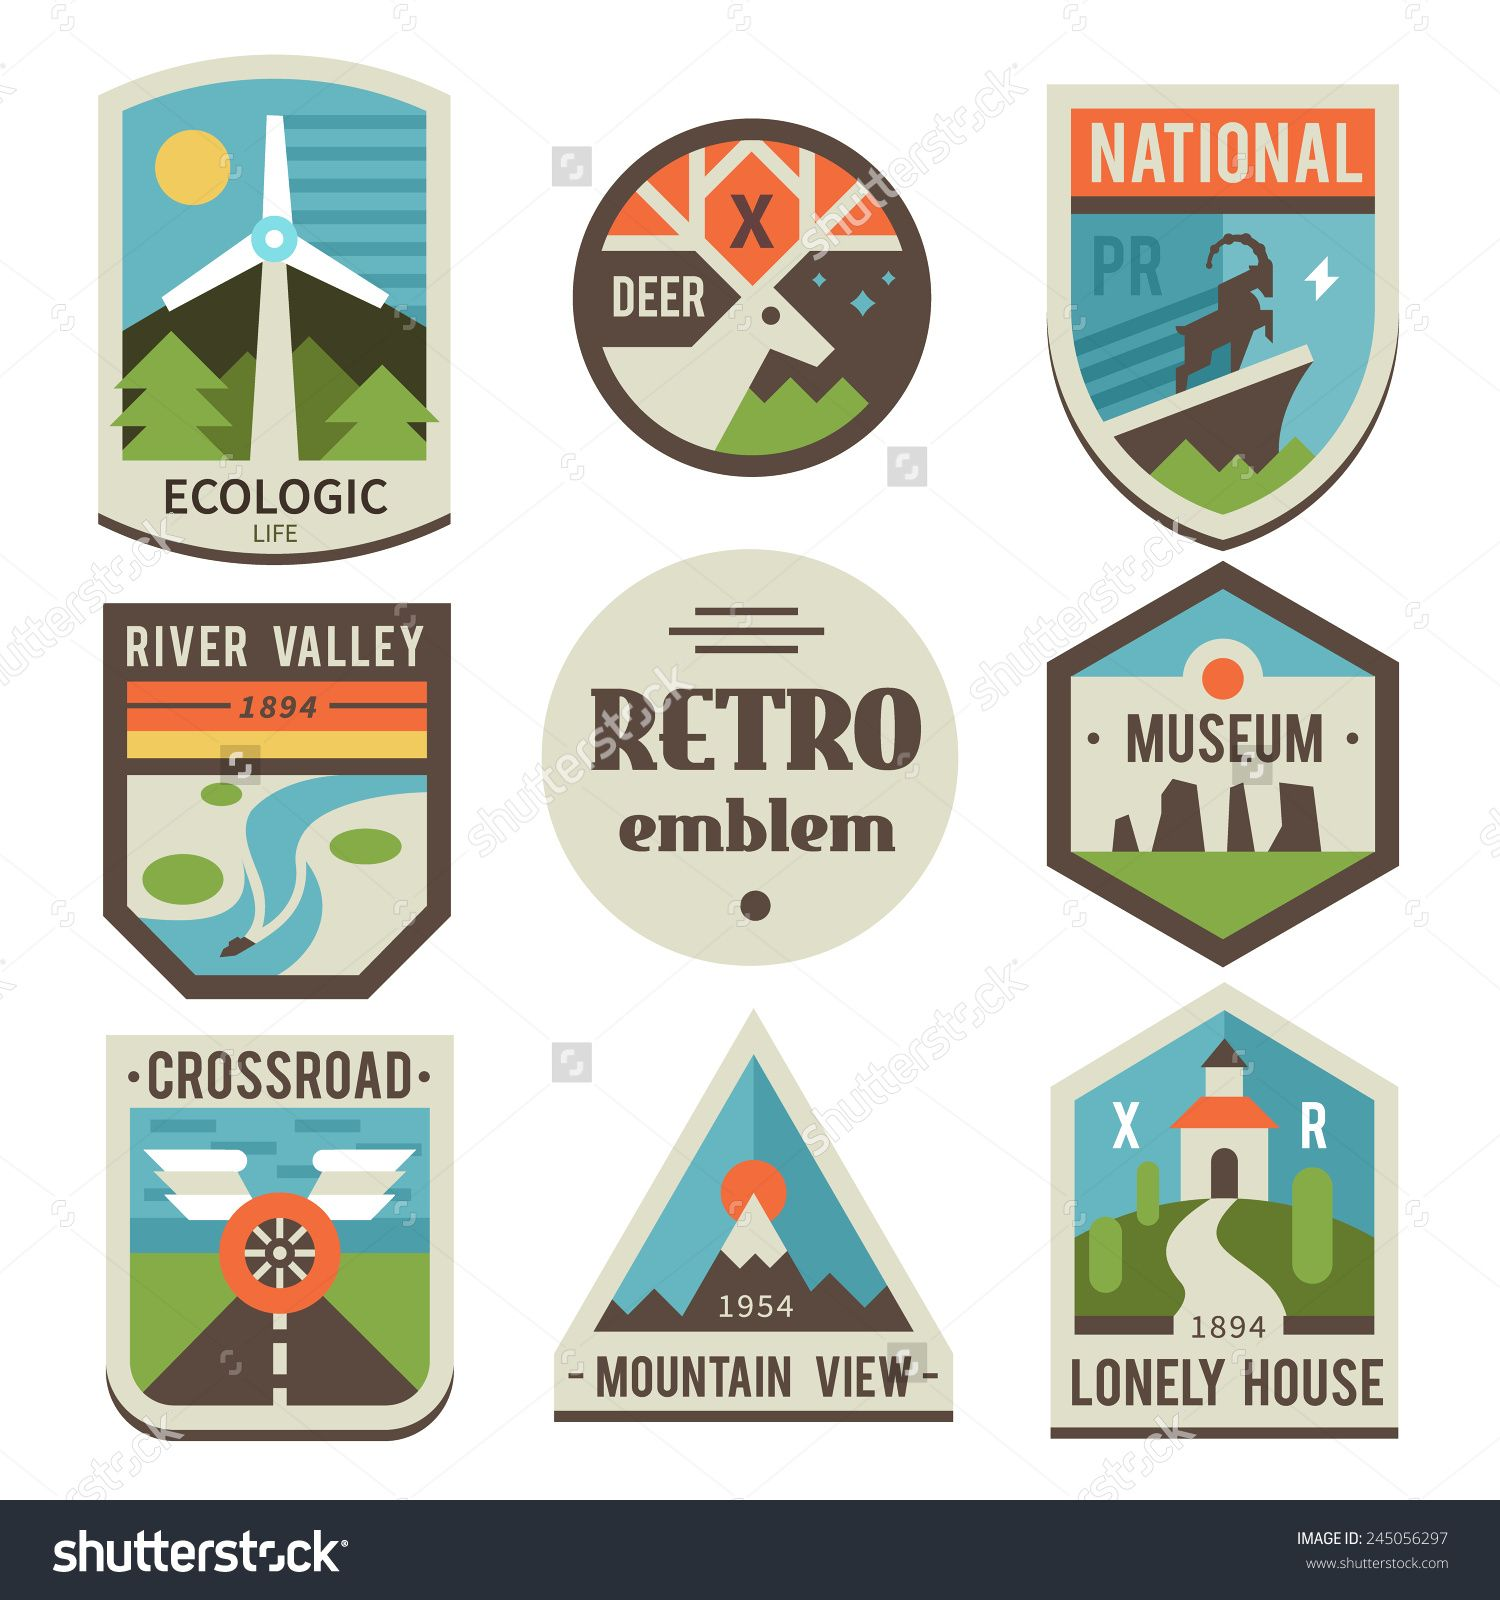 national park logos Google Search Vintage national